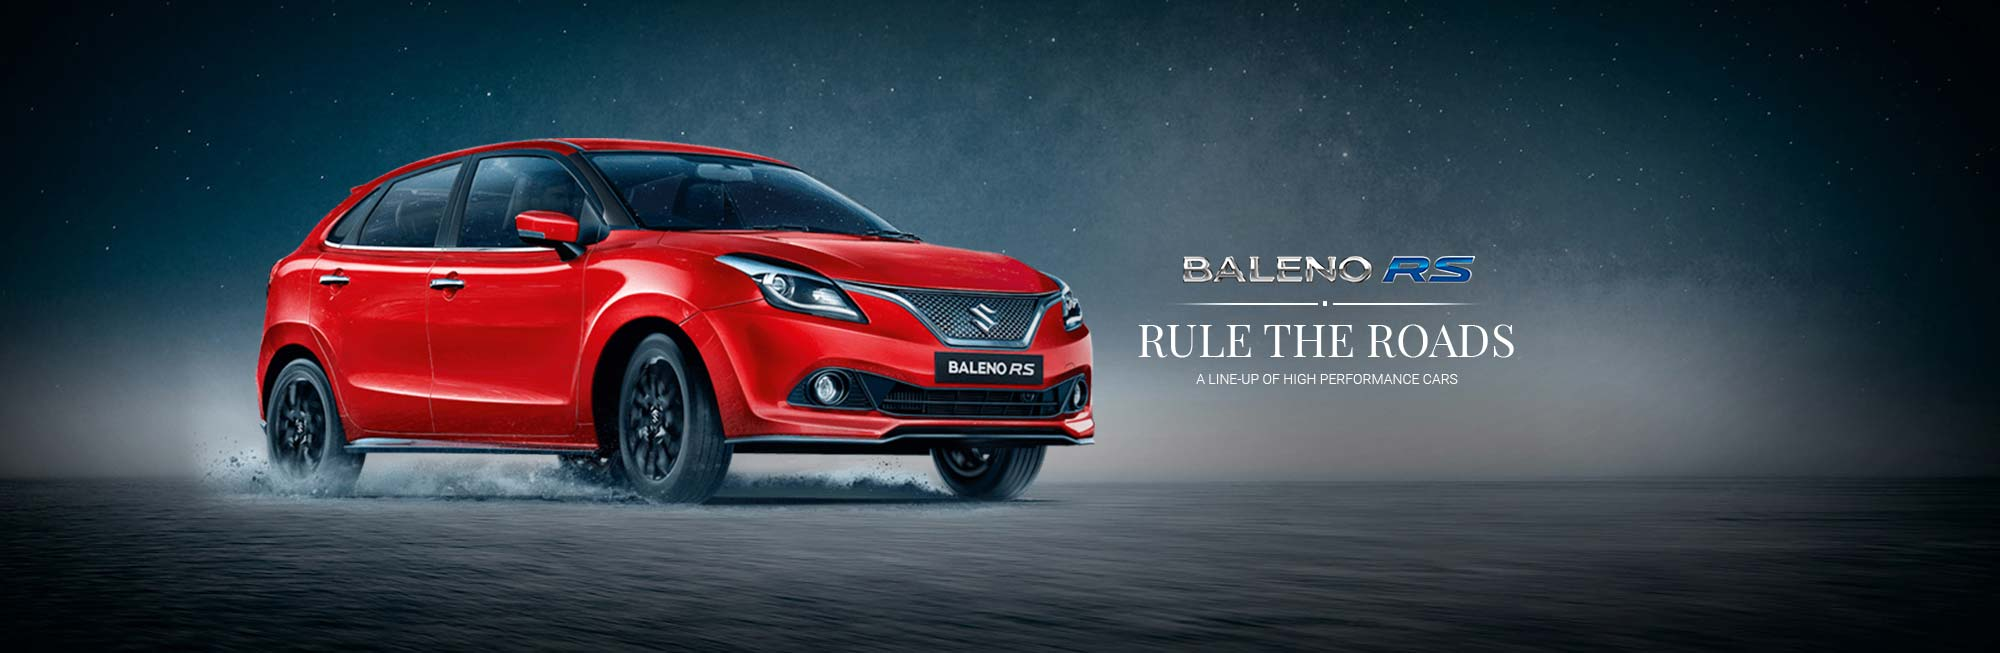 Baleno - Rule the Roads